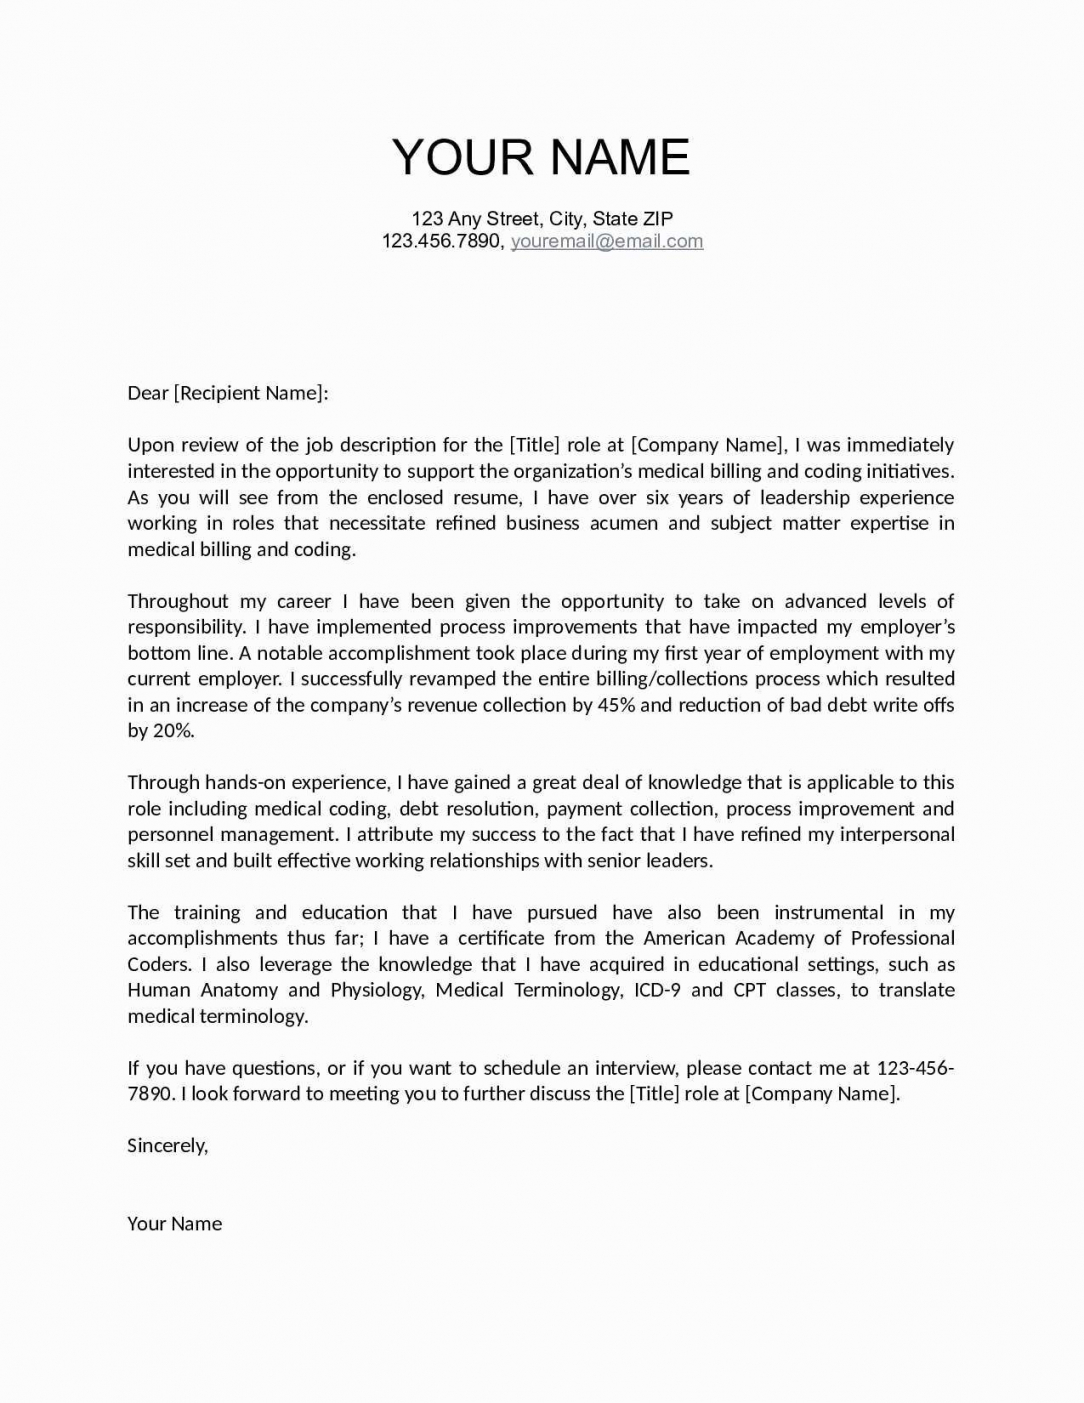 executive management cover letter sample new case manager cover case manager cover letter template